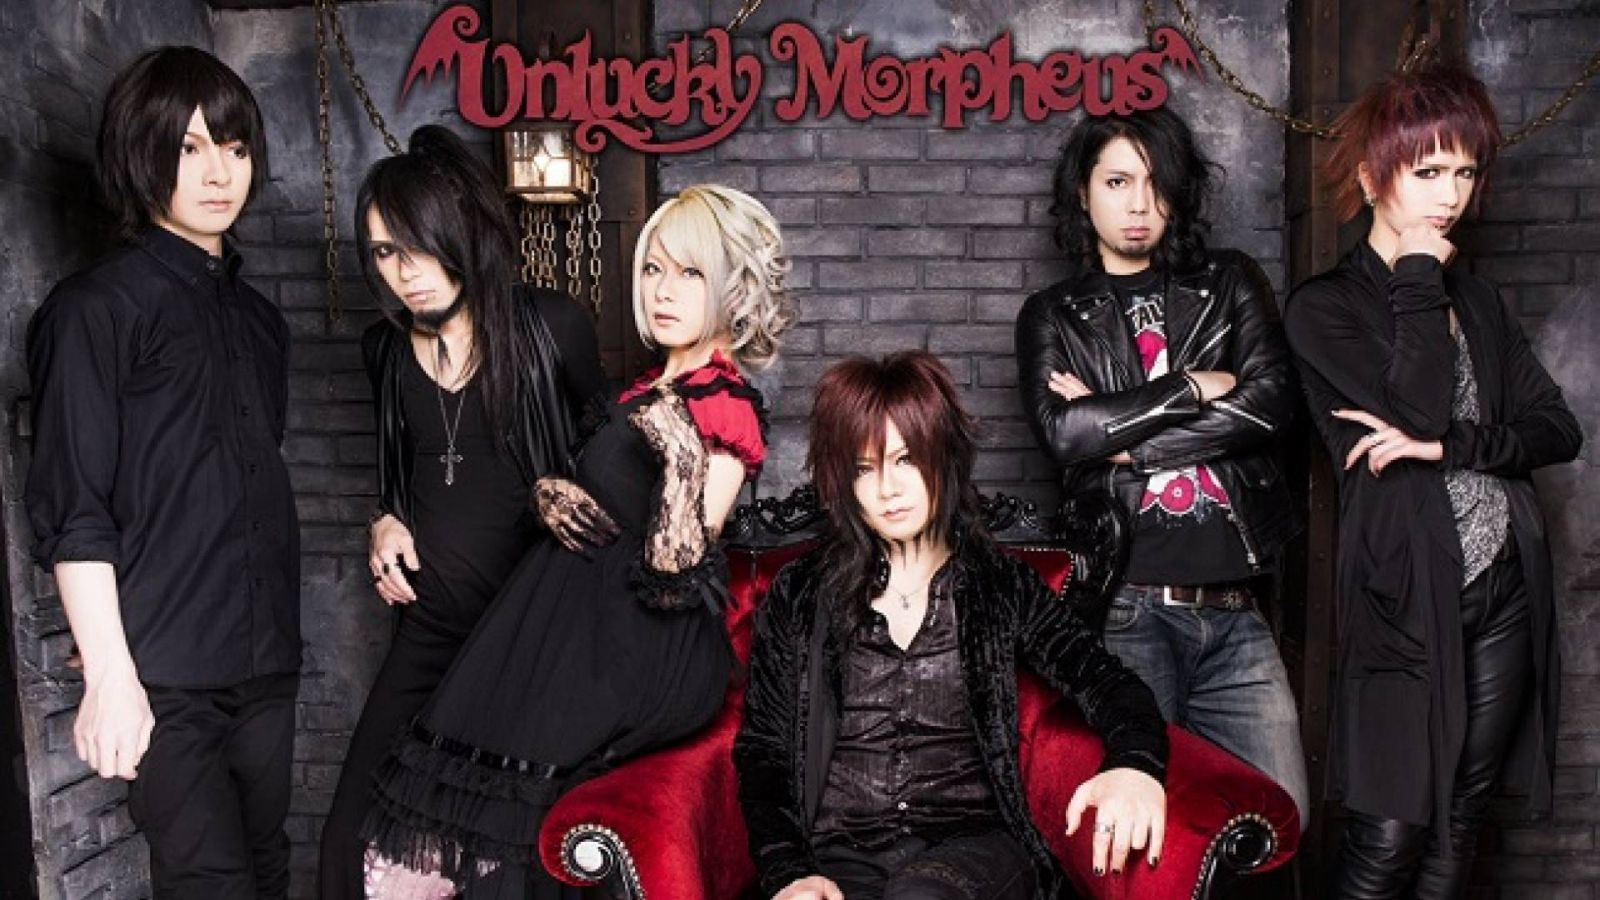 New Live Releases from Unlucky Morpheus © 2015 Unlucky Morpheus